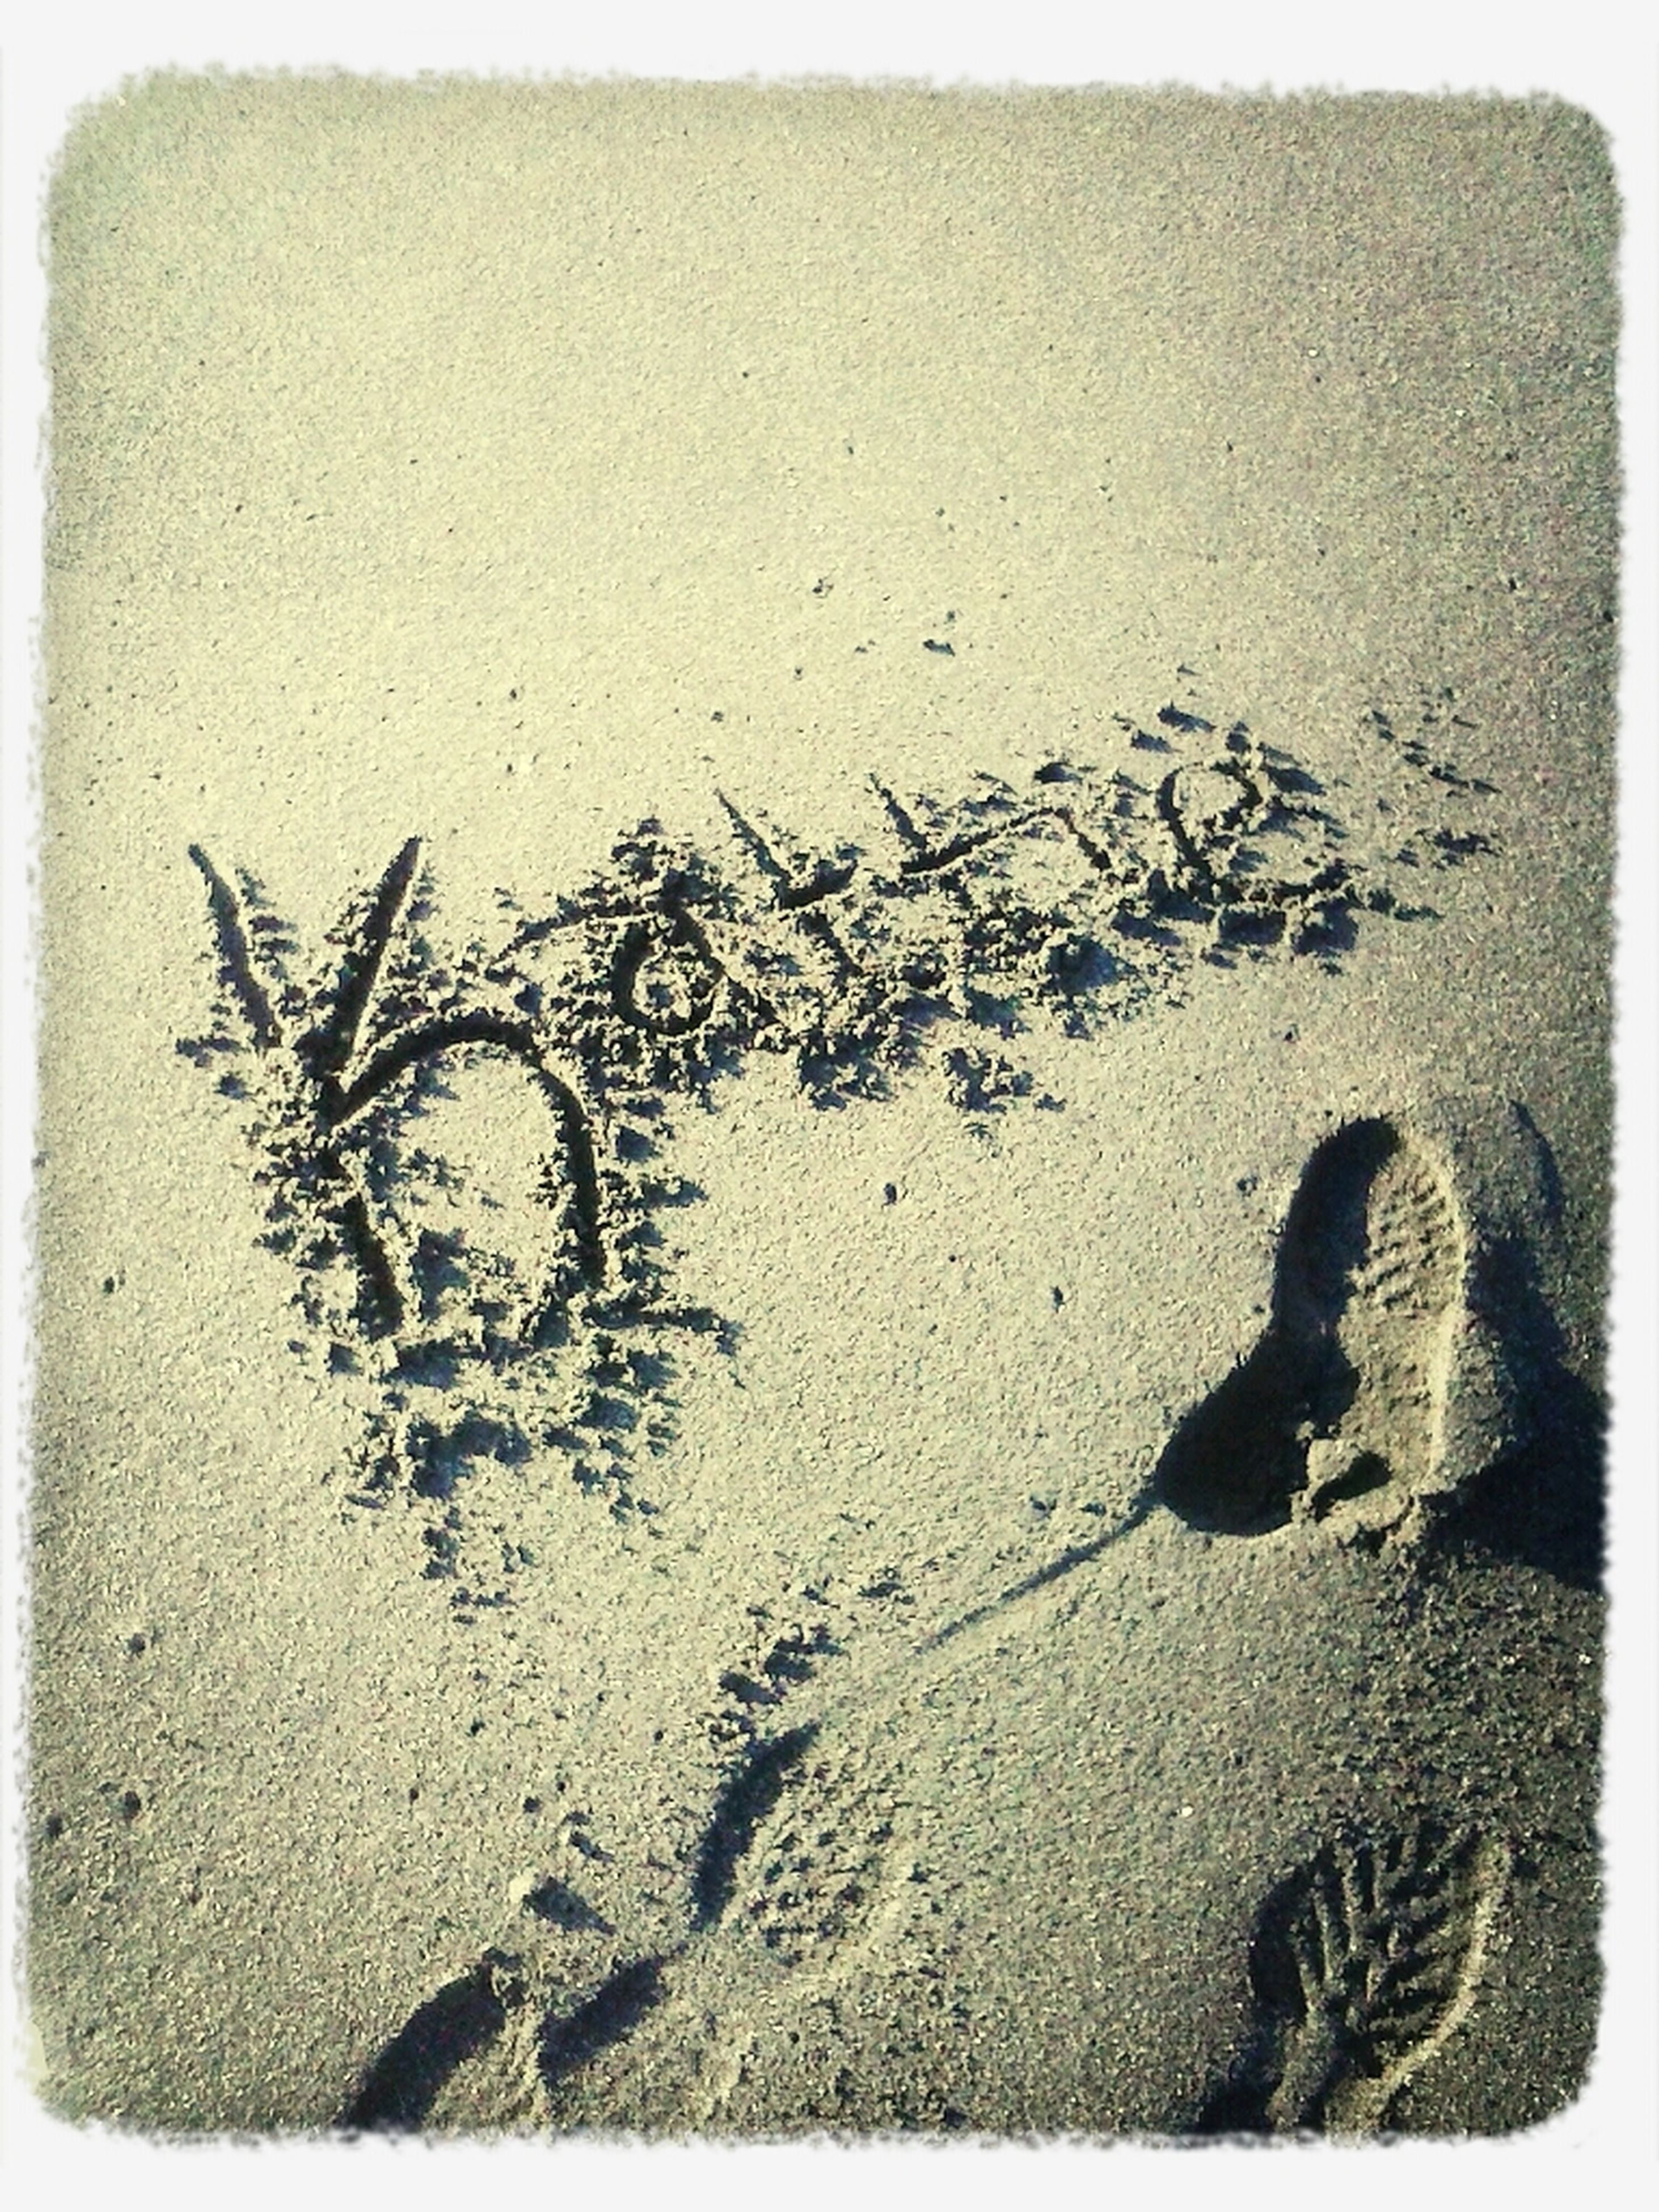 transfer print, auto post production filter, text, western script, sand, footprint, communication, wall - building feature, high angle view, close-up, creativity, outdoors, day, love, art, graffiti, textured, beach, heart shape, no people